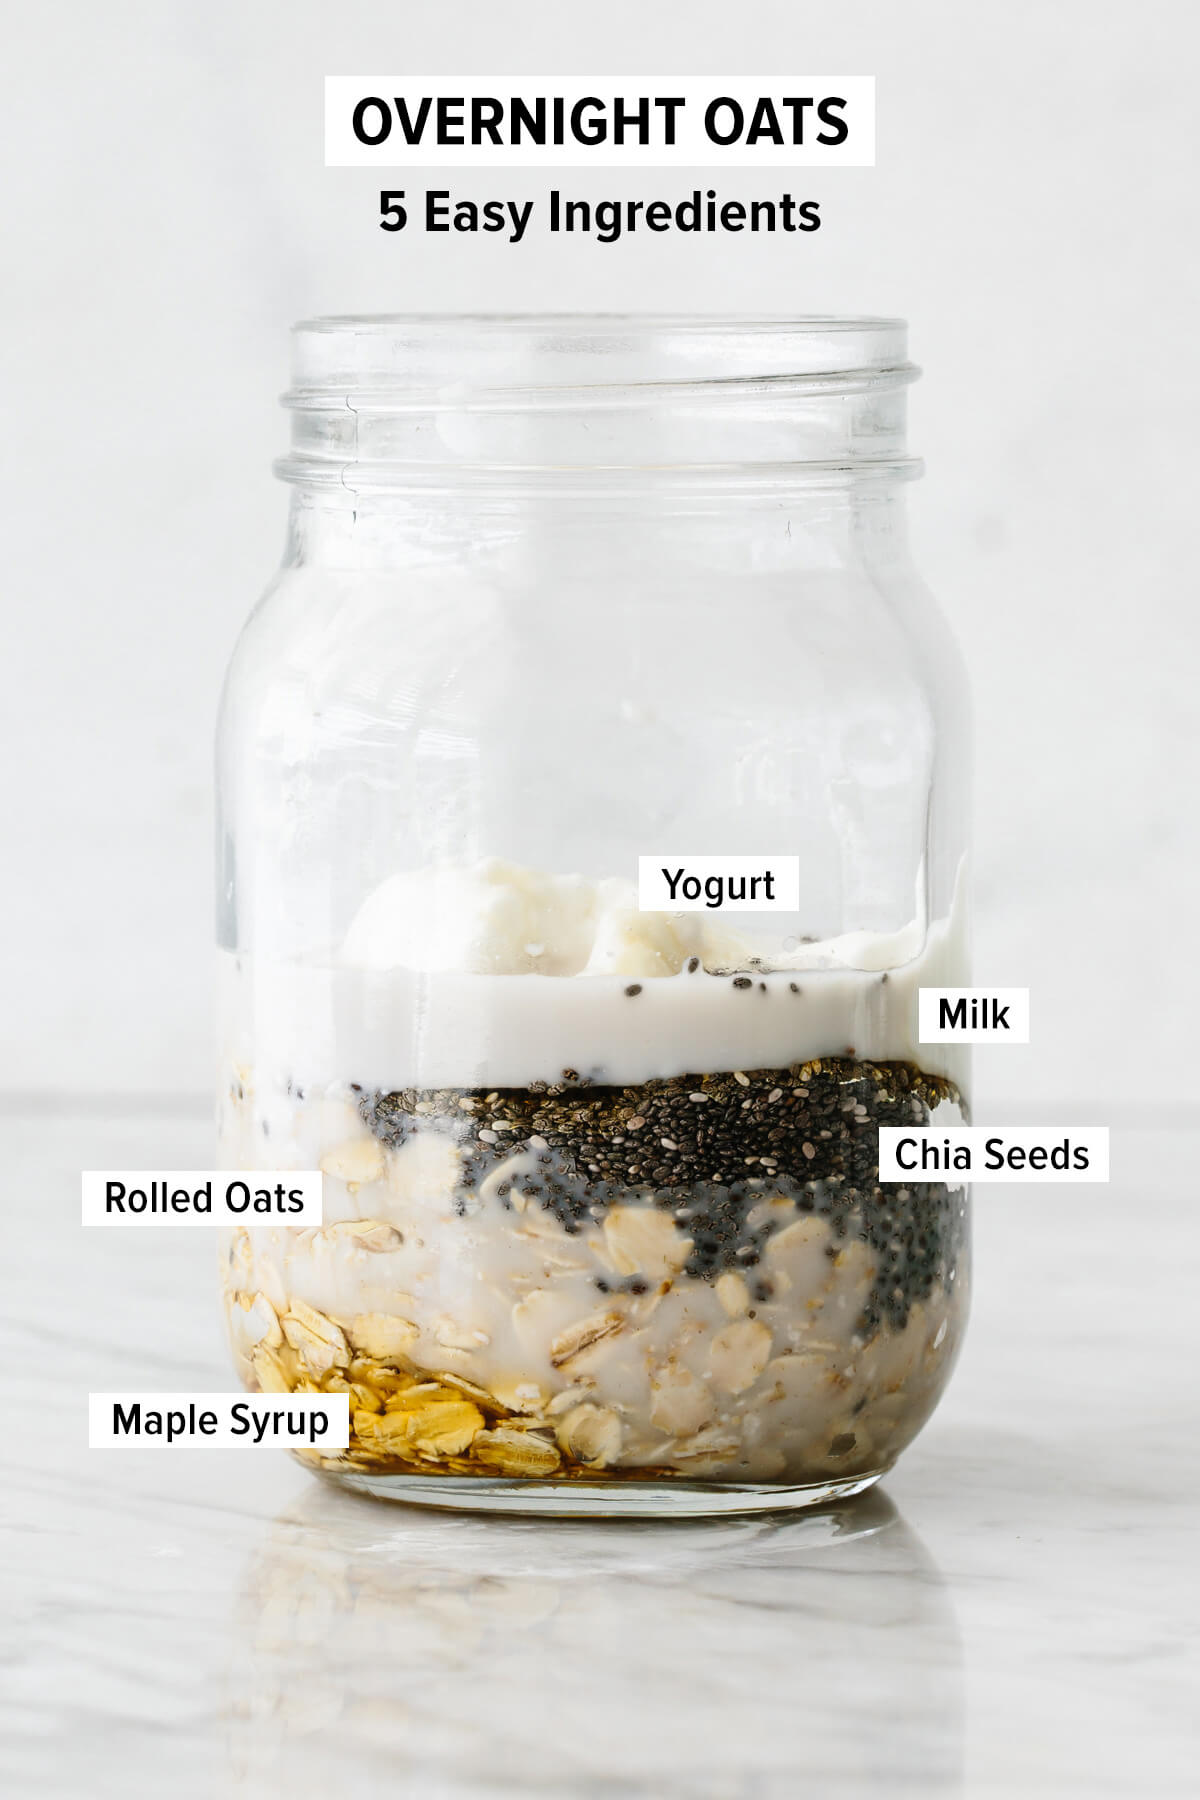 A jar with ingredients to make overnight oats.